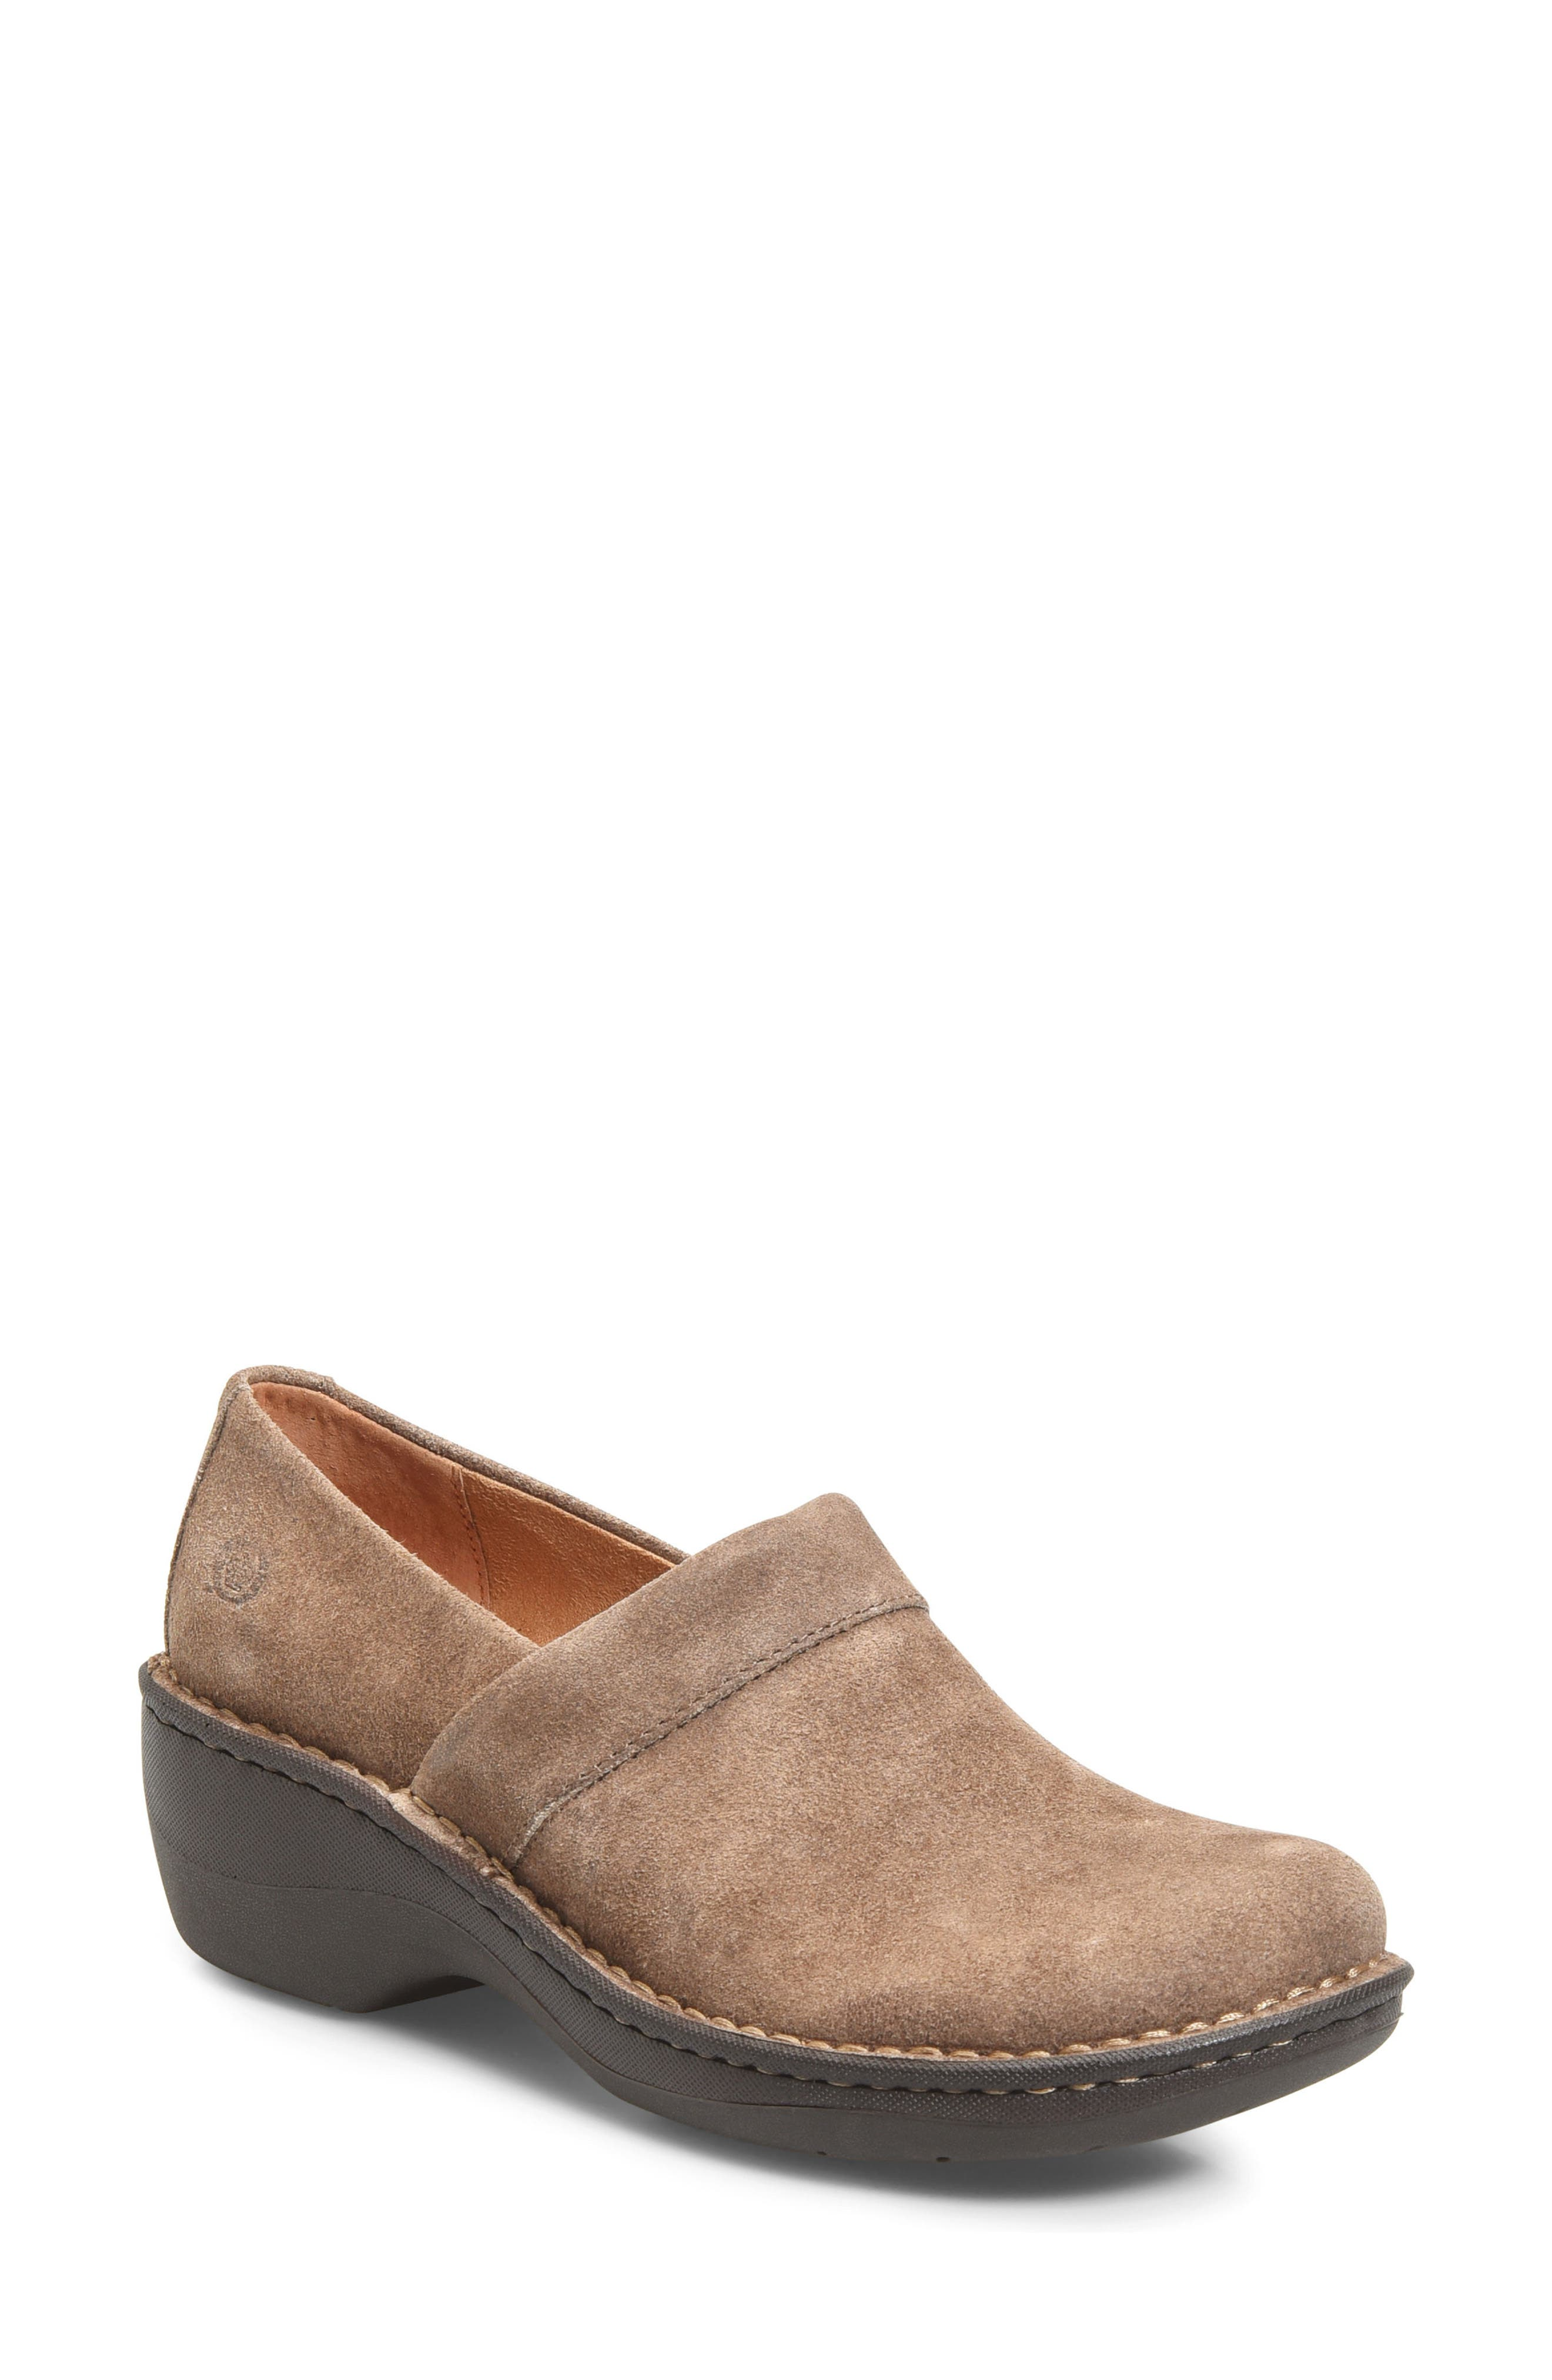 Born Askel Clog,                             Main thumbnail 1, color,                             Taupe Suede